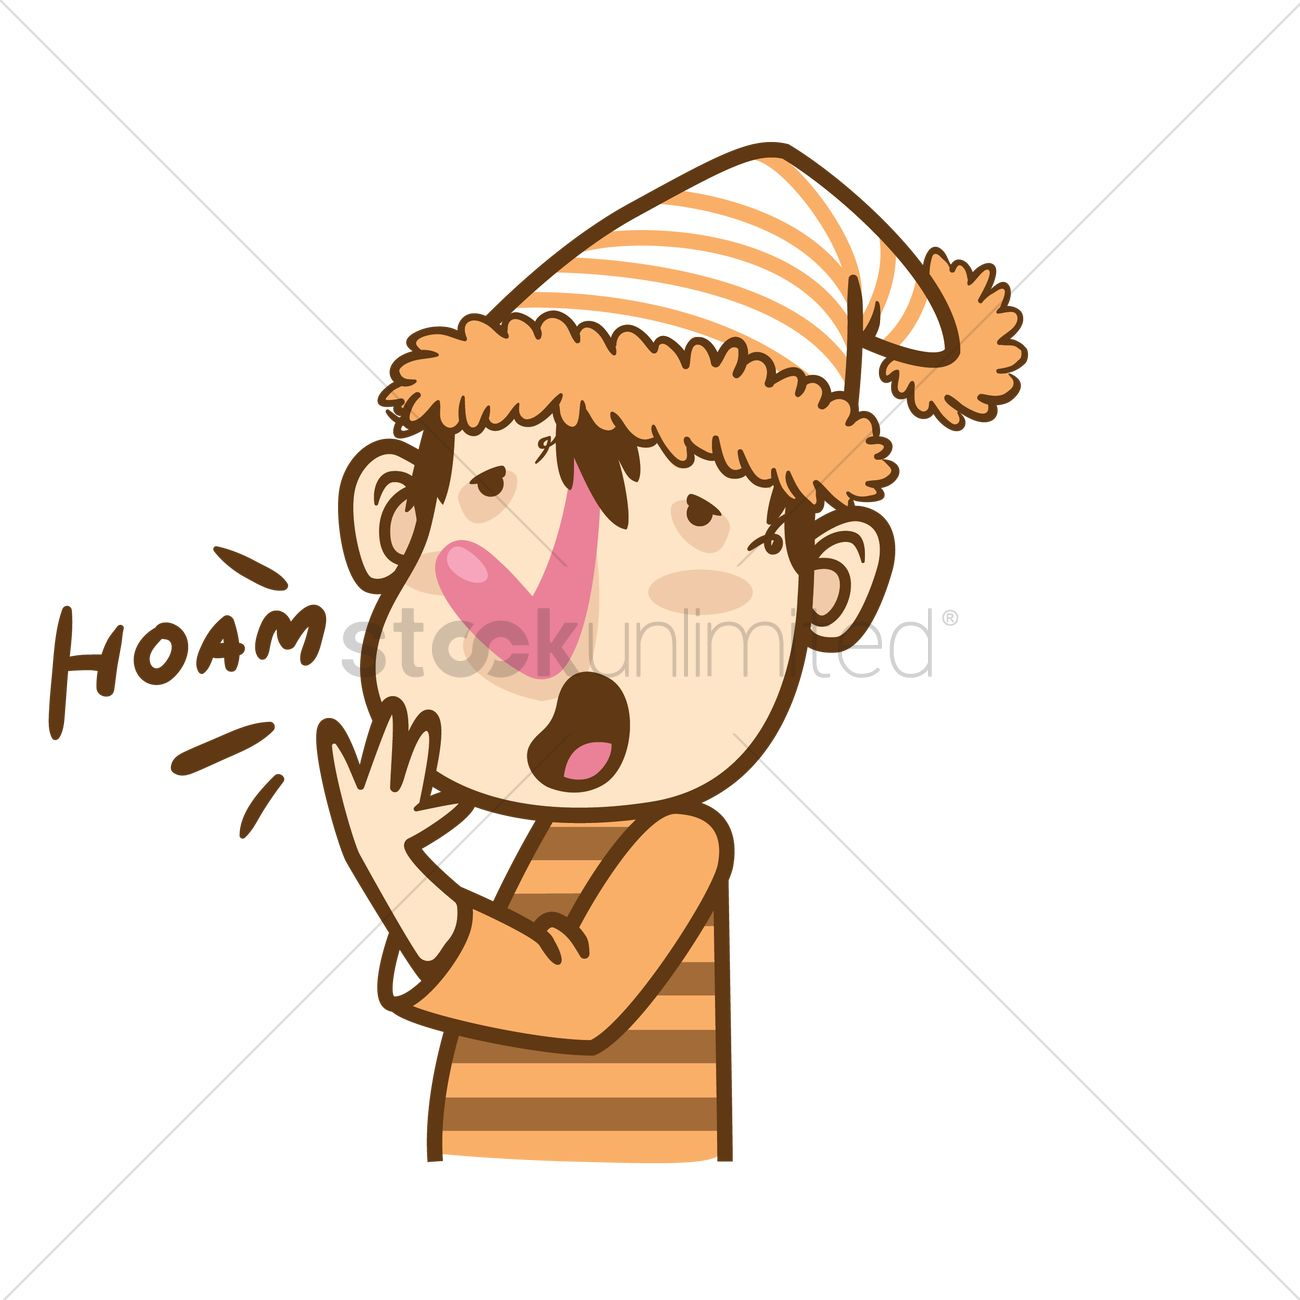 Cartoon character yawning Vector Image - 1935091 | StockUnlimited for Clipart Yawn  53kxo